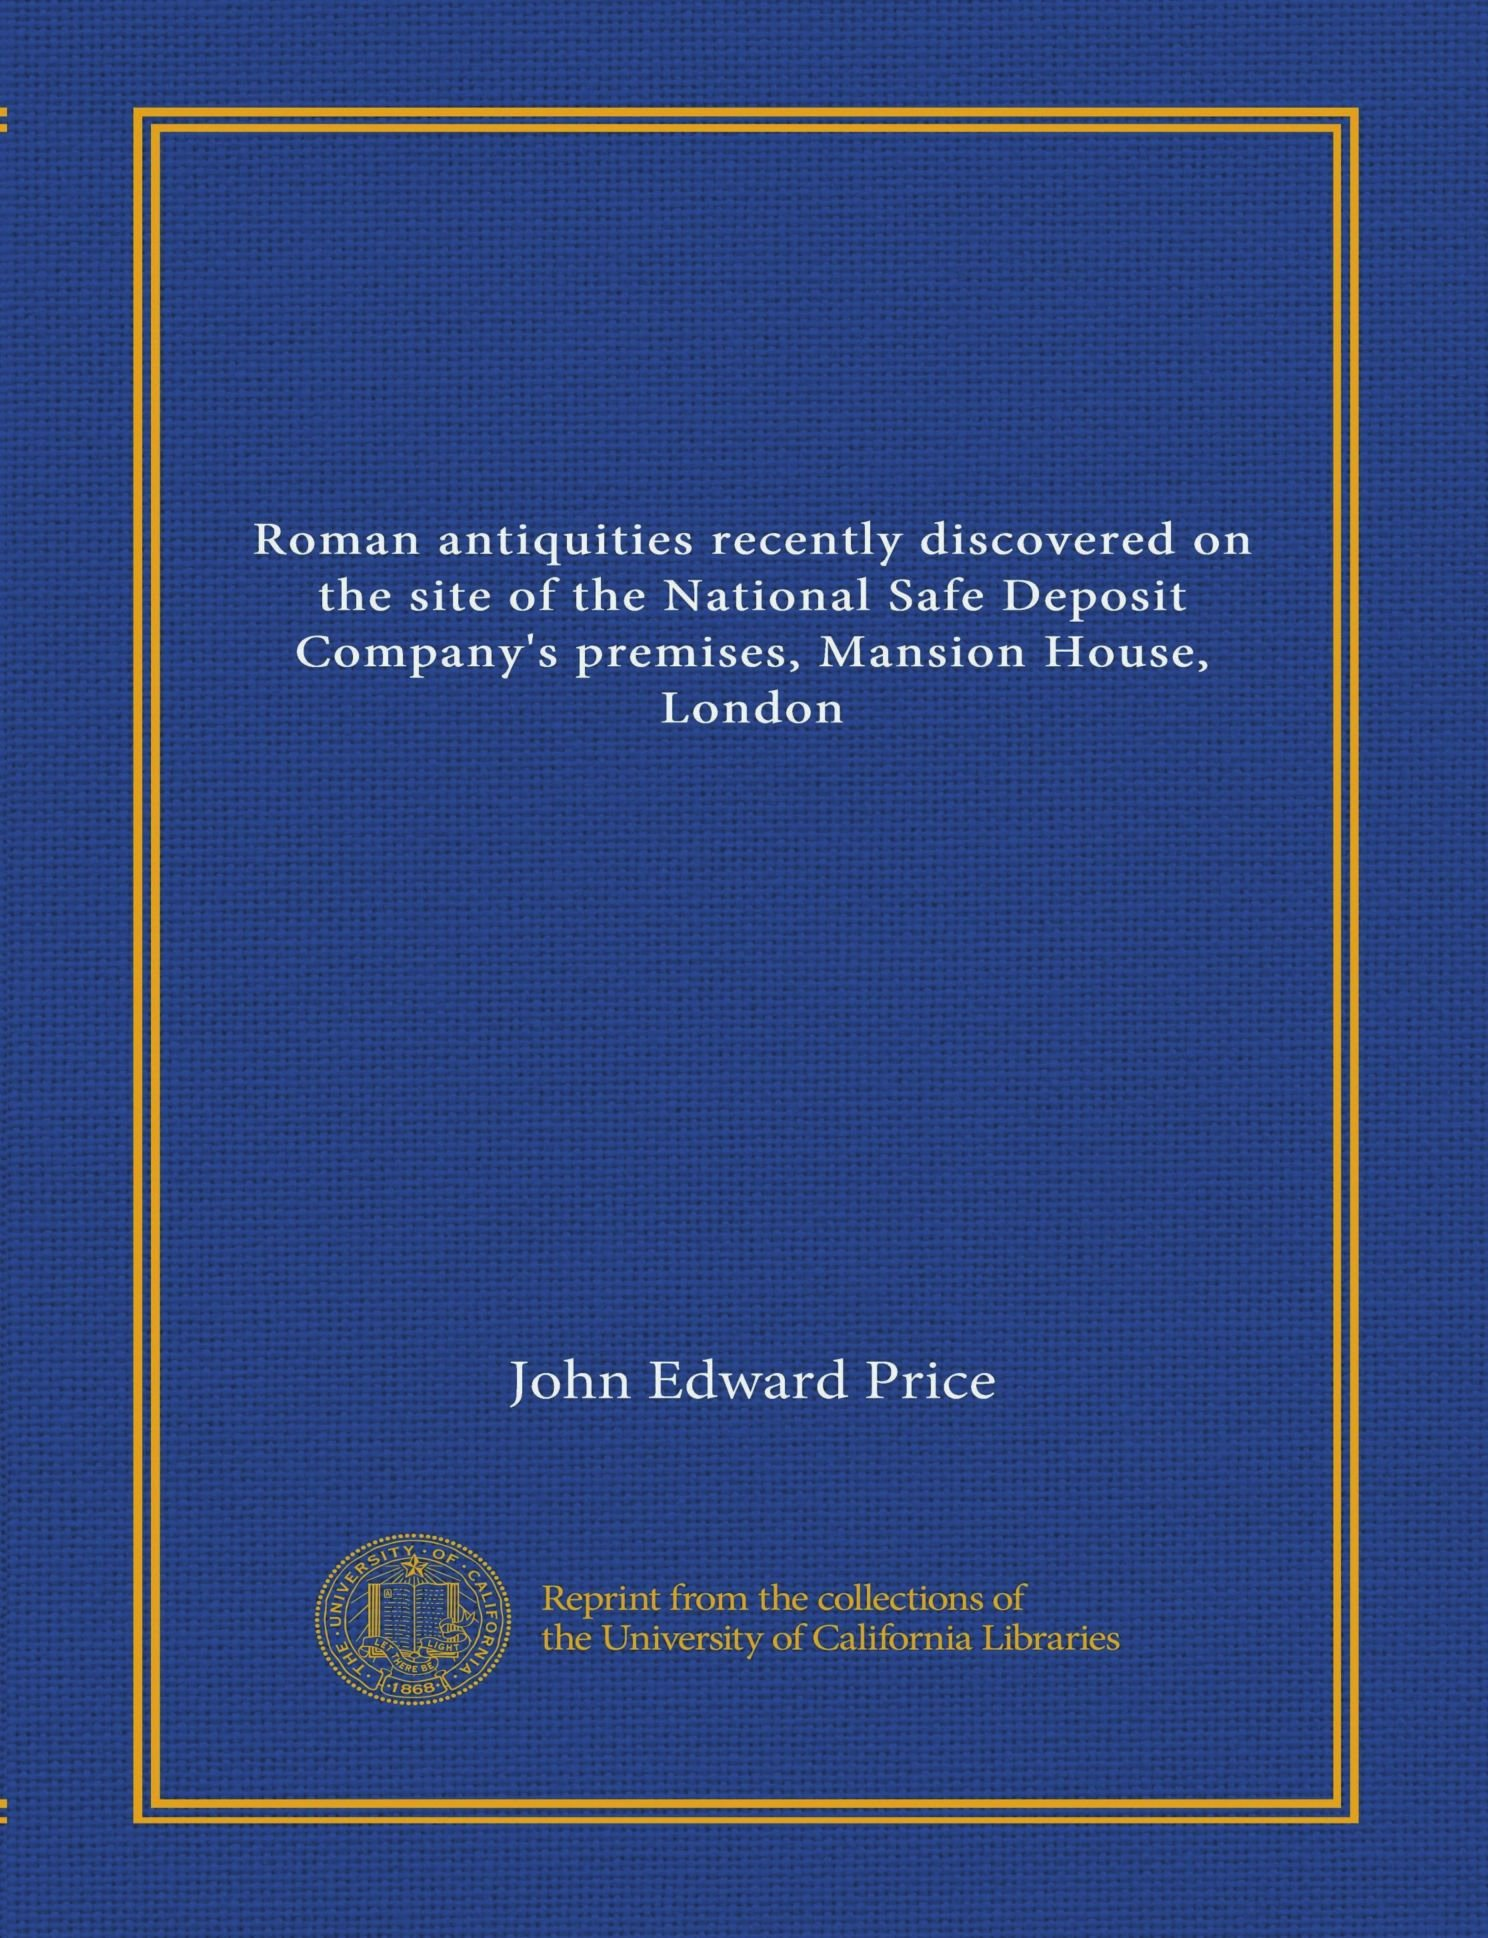 Roman antiquities recently discovered on the site of the National Safe Deposit Company's premises, Mansion House, London ebook